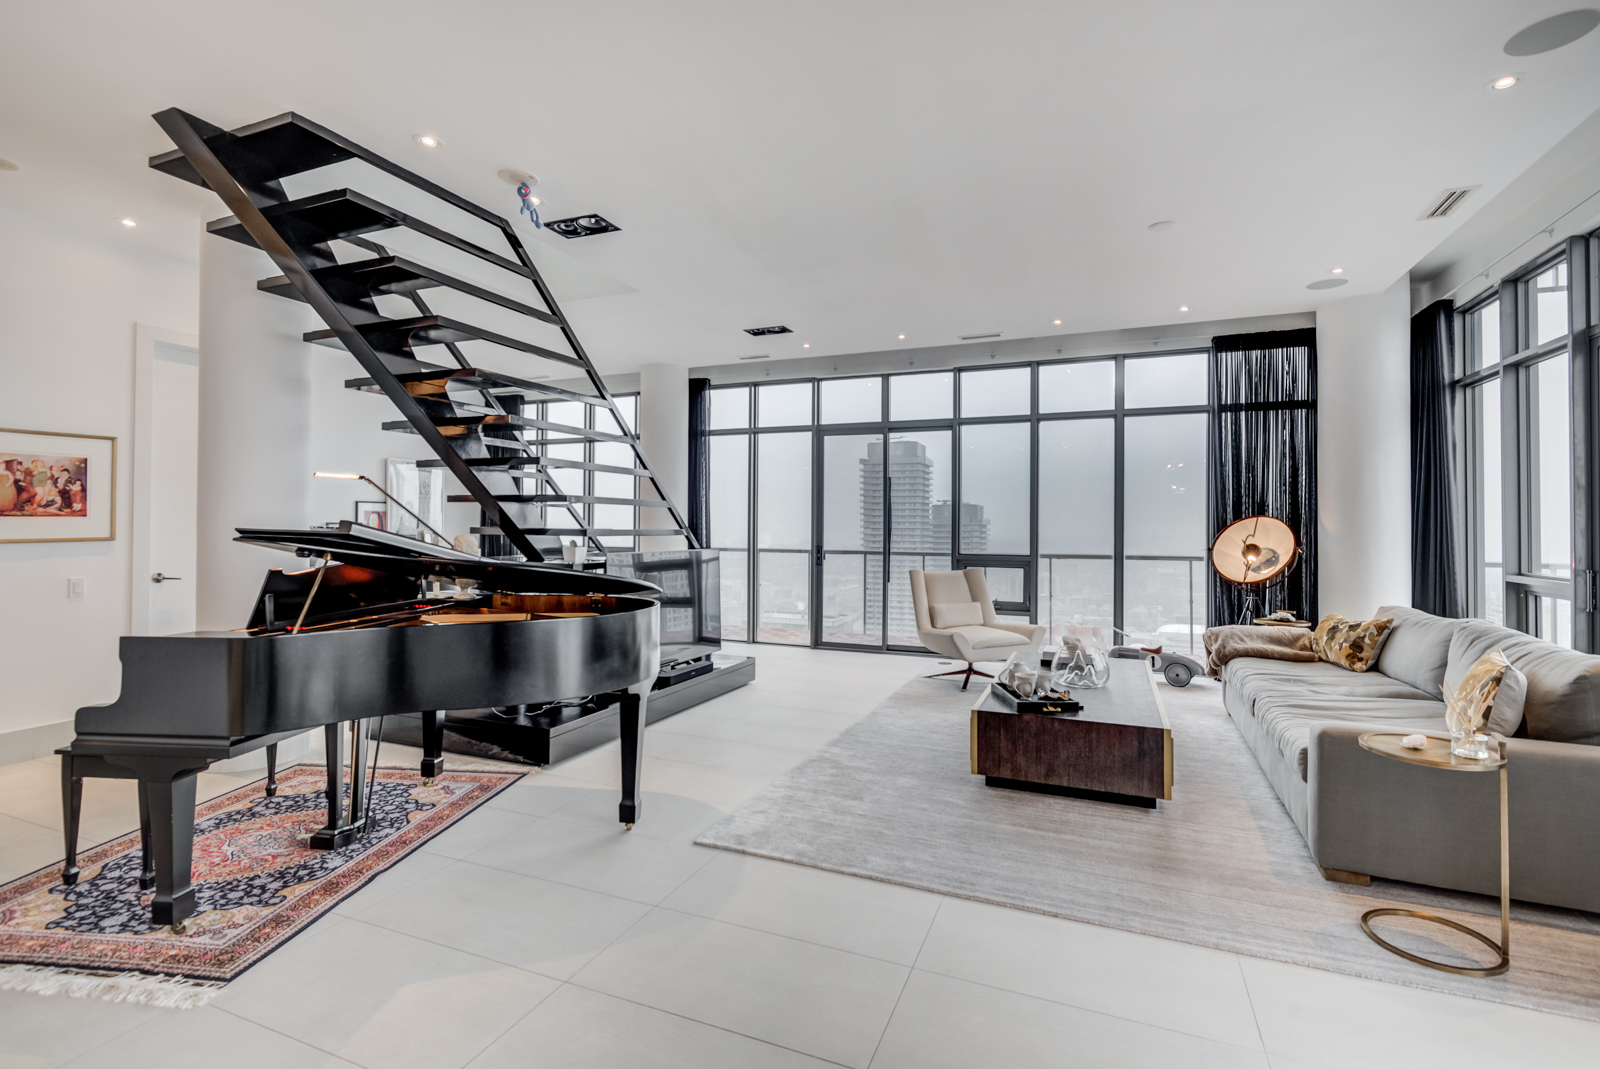 Second most expensive property with black piano, staircase, furniture in penthouse of 33 Charles St E penthouse unit.